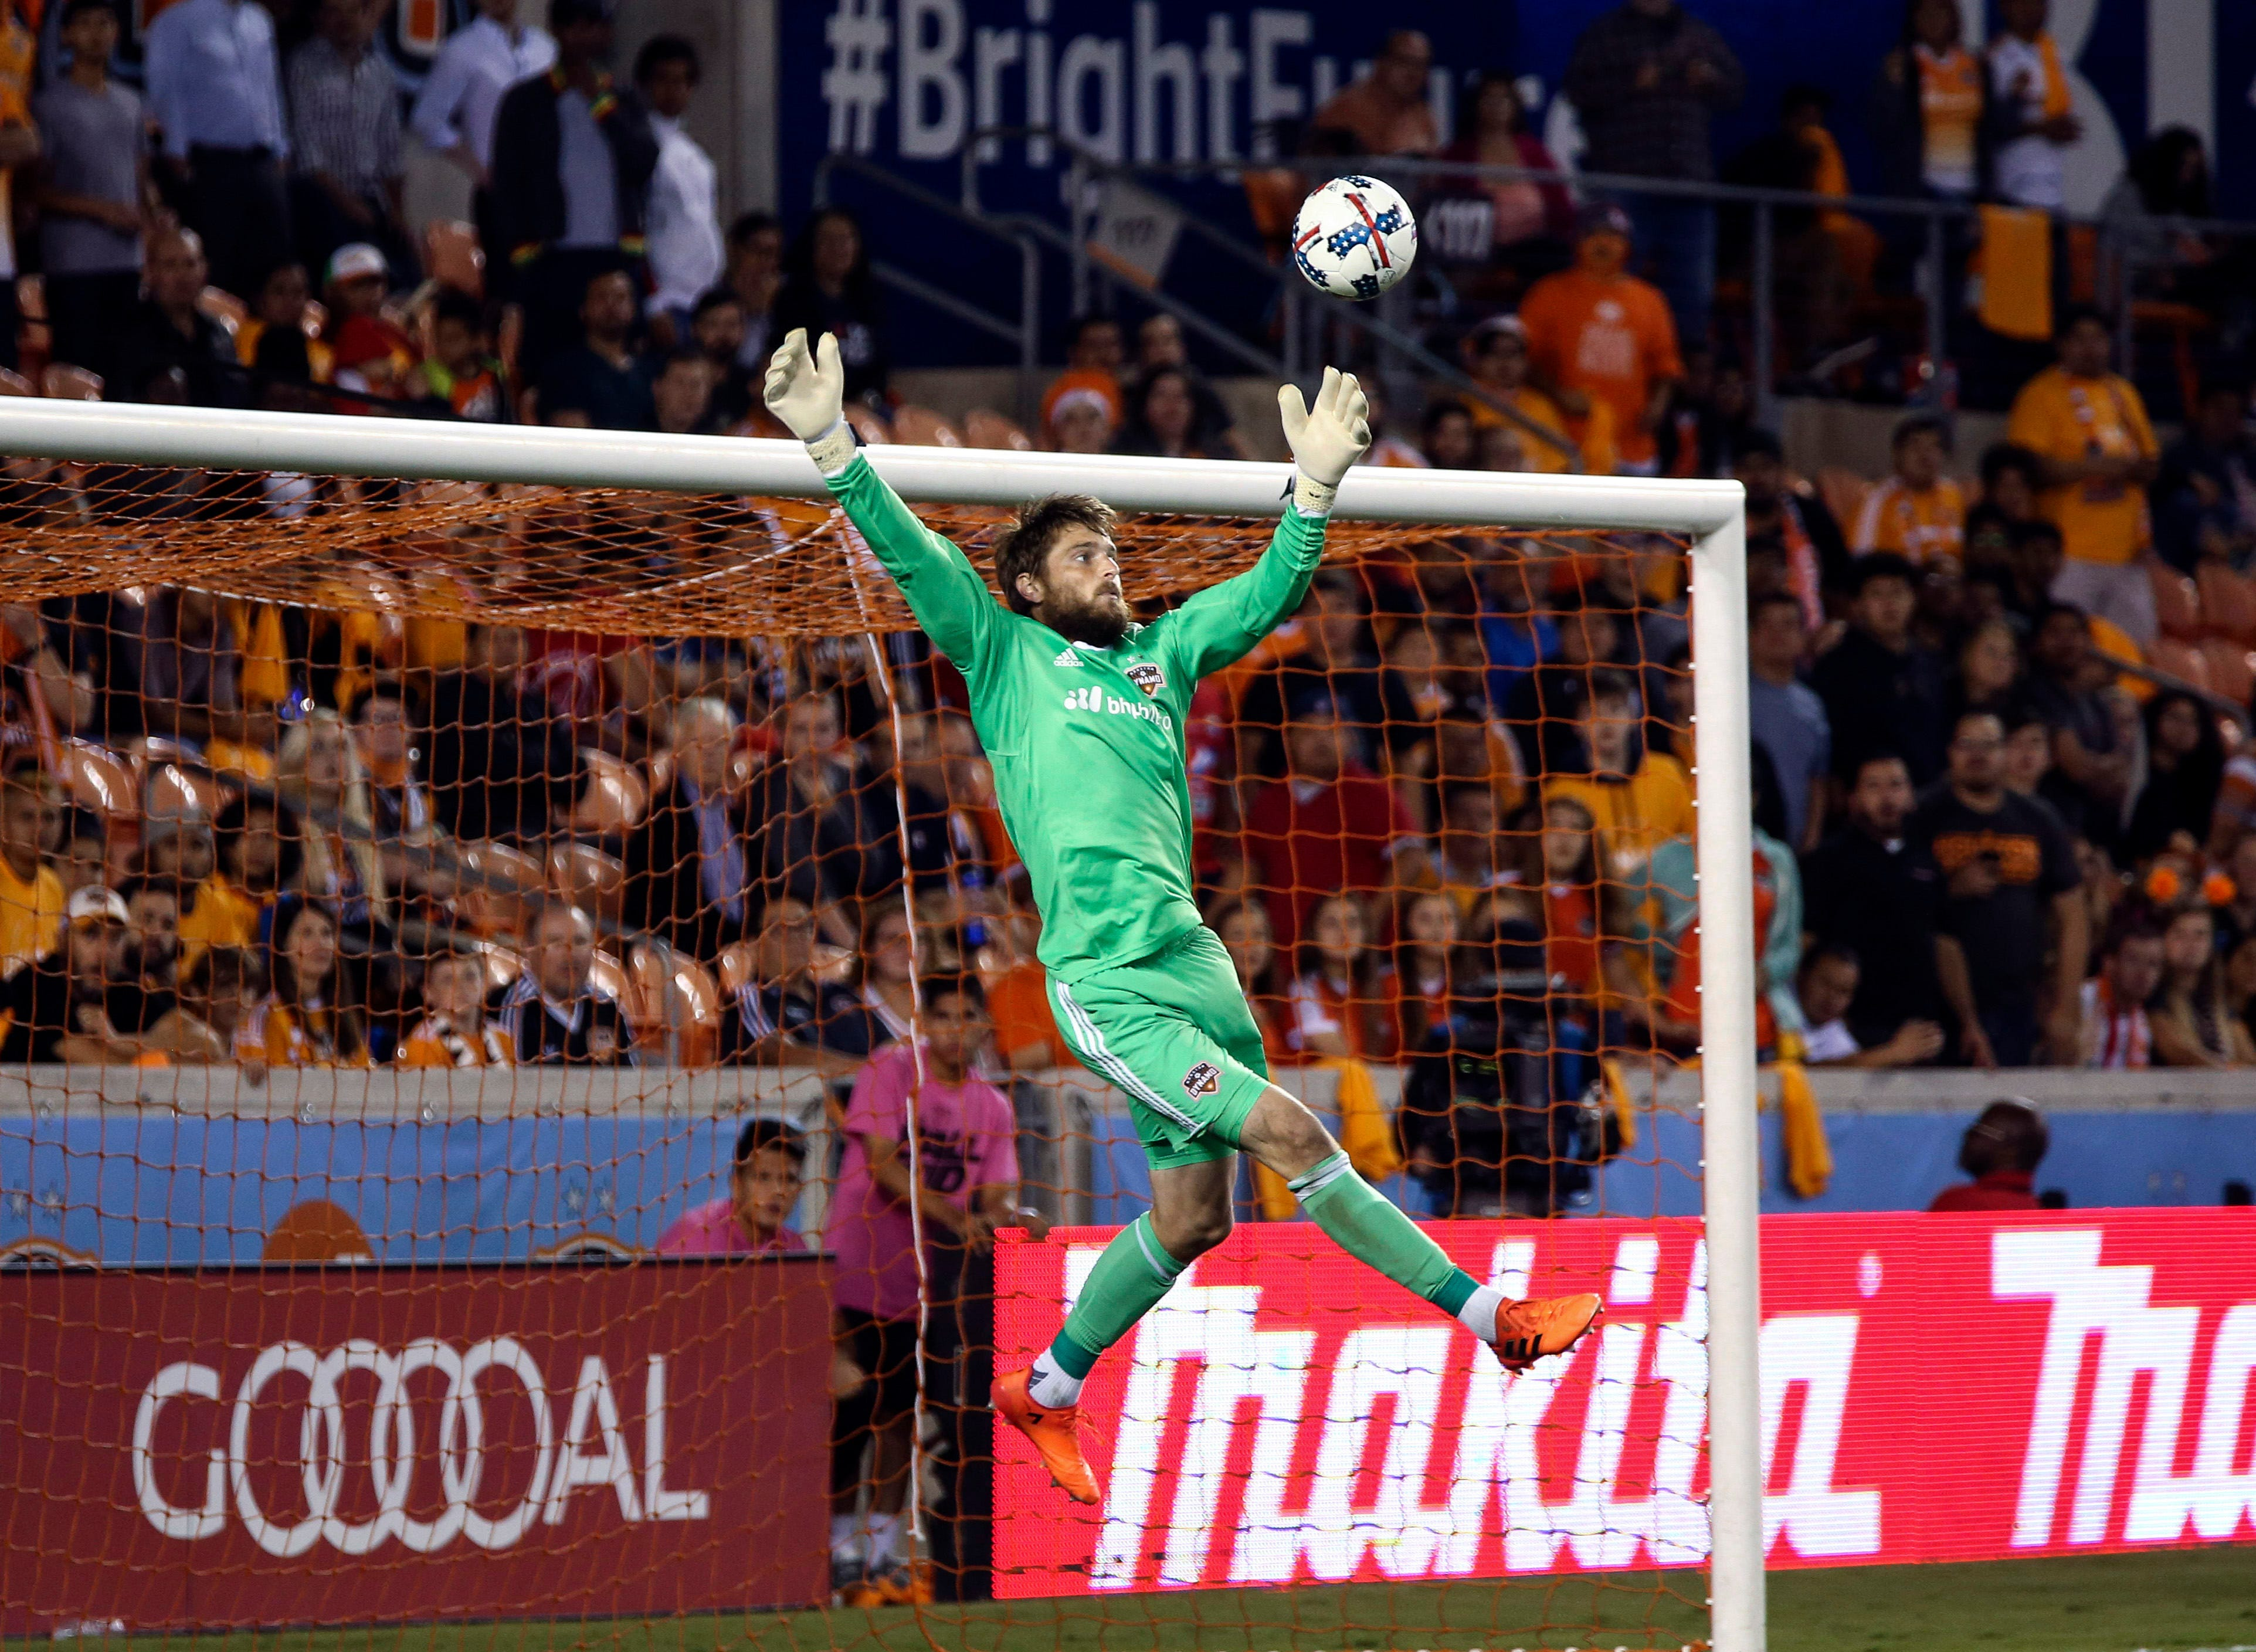 Houston Dynamo goalkeeper Tyler Deric charged in alleged domestic incident